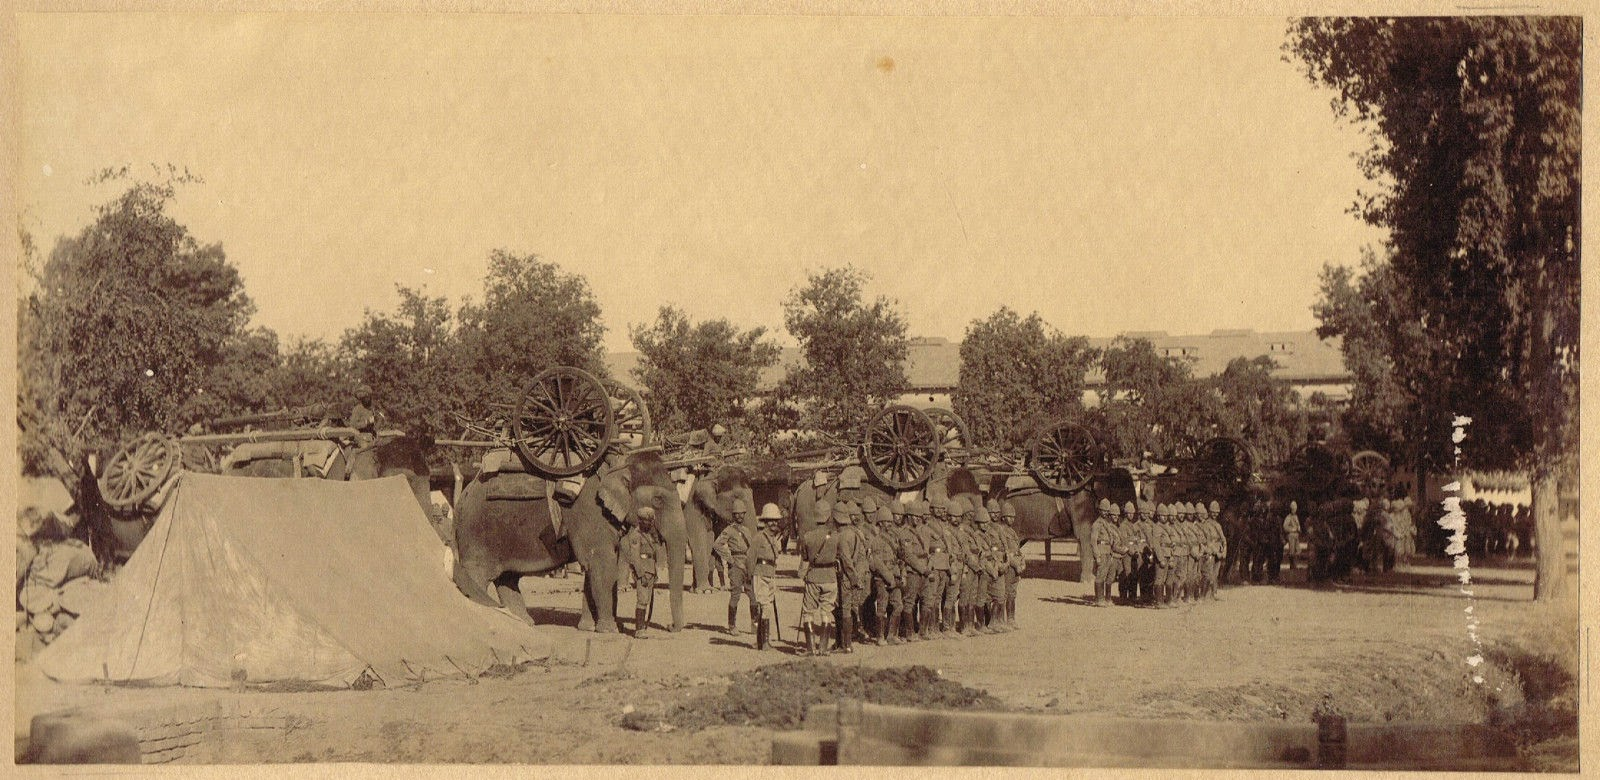 Military Elephant Battery in Peshawar - c1900